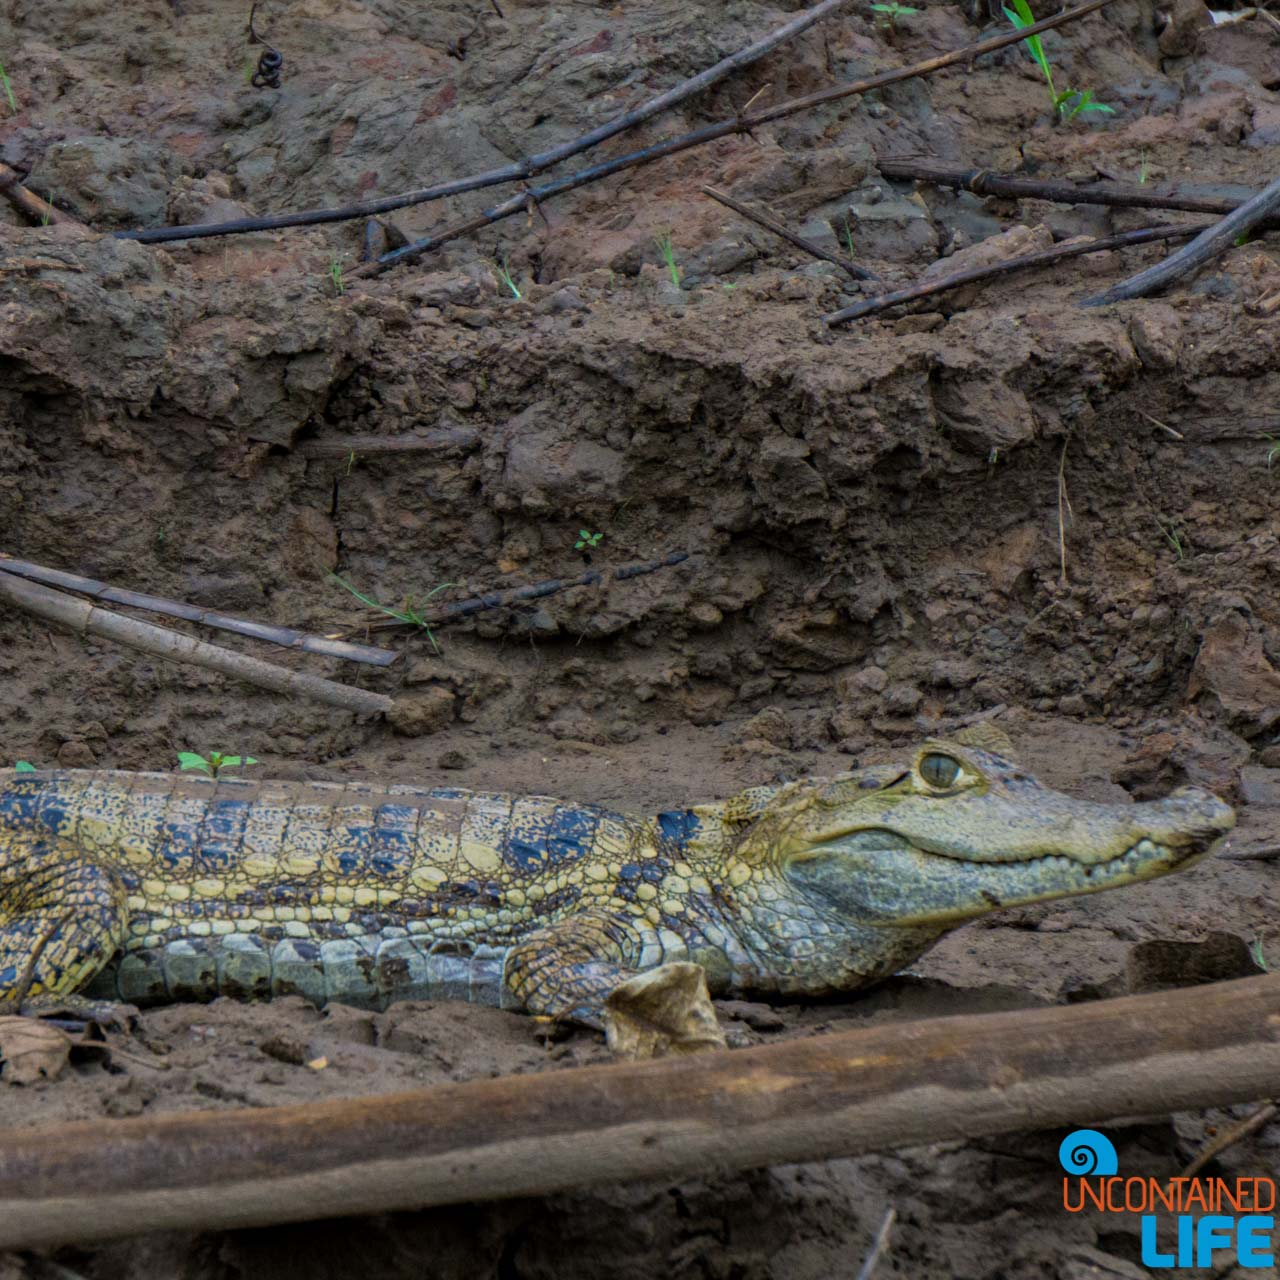 Cayman, Wildlife, Visit to the Peruvian Amazon, Puerto Maldonado, Peru, Uncontained Life